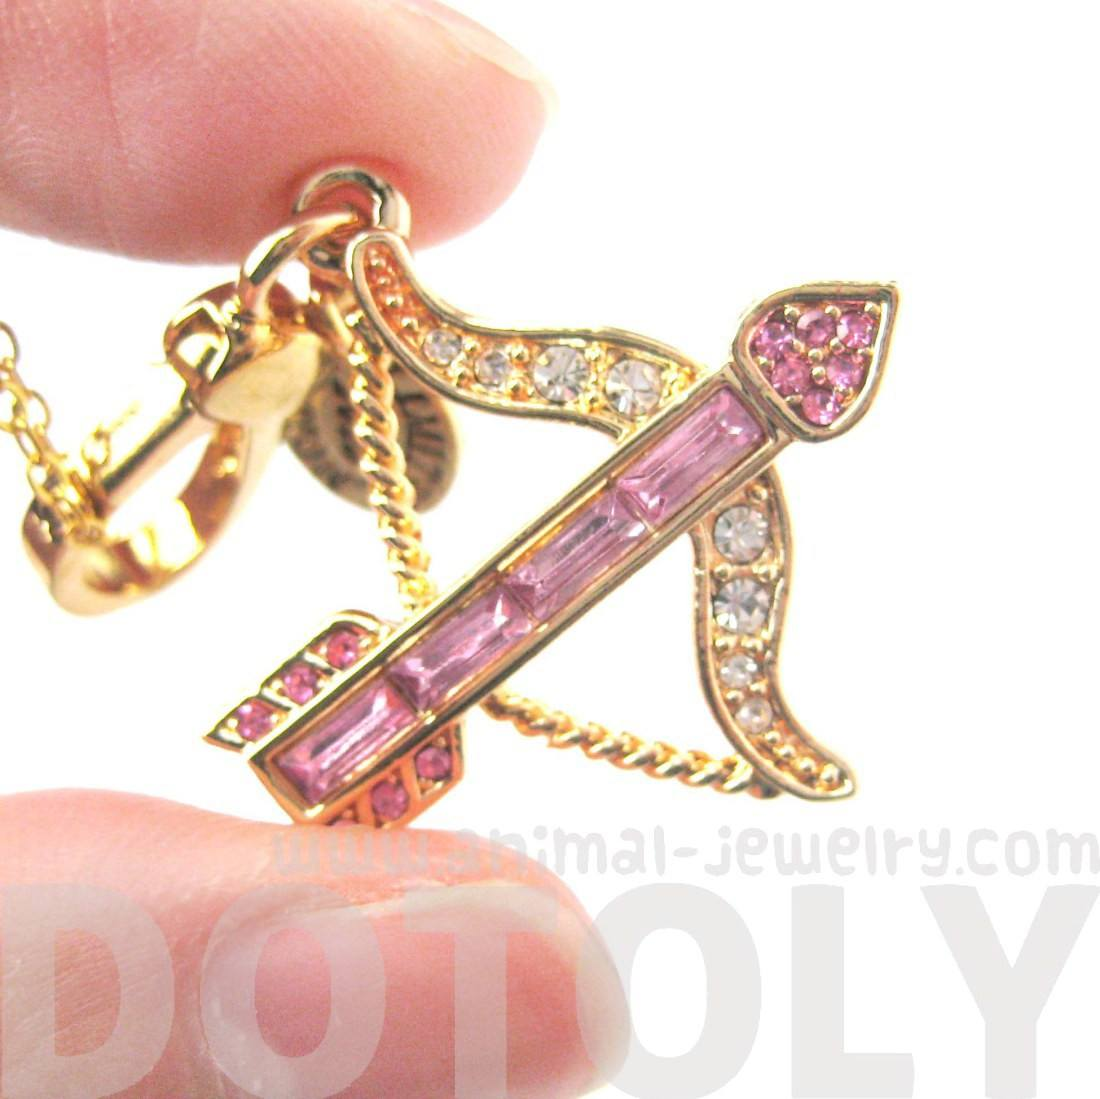 Arrow Bow Cupid Love Themed Pendant Necklace in Pink with Rhinestones